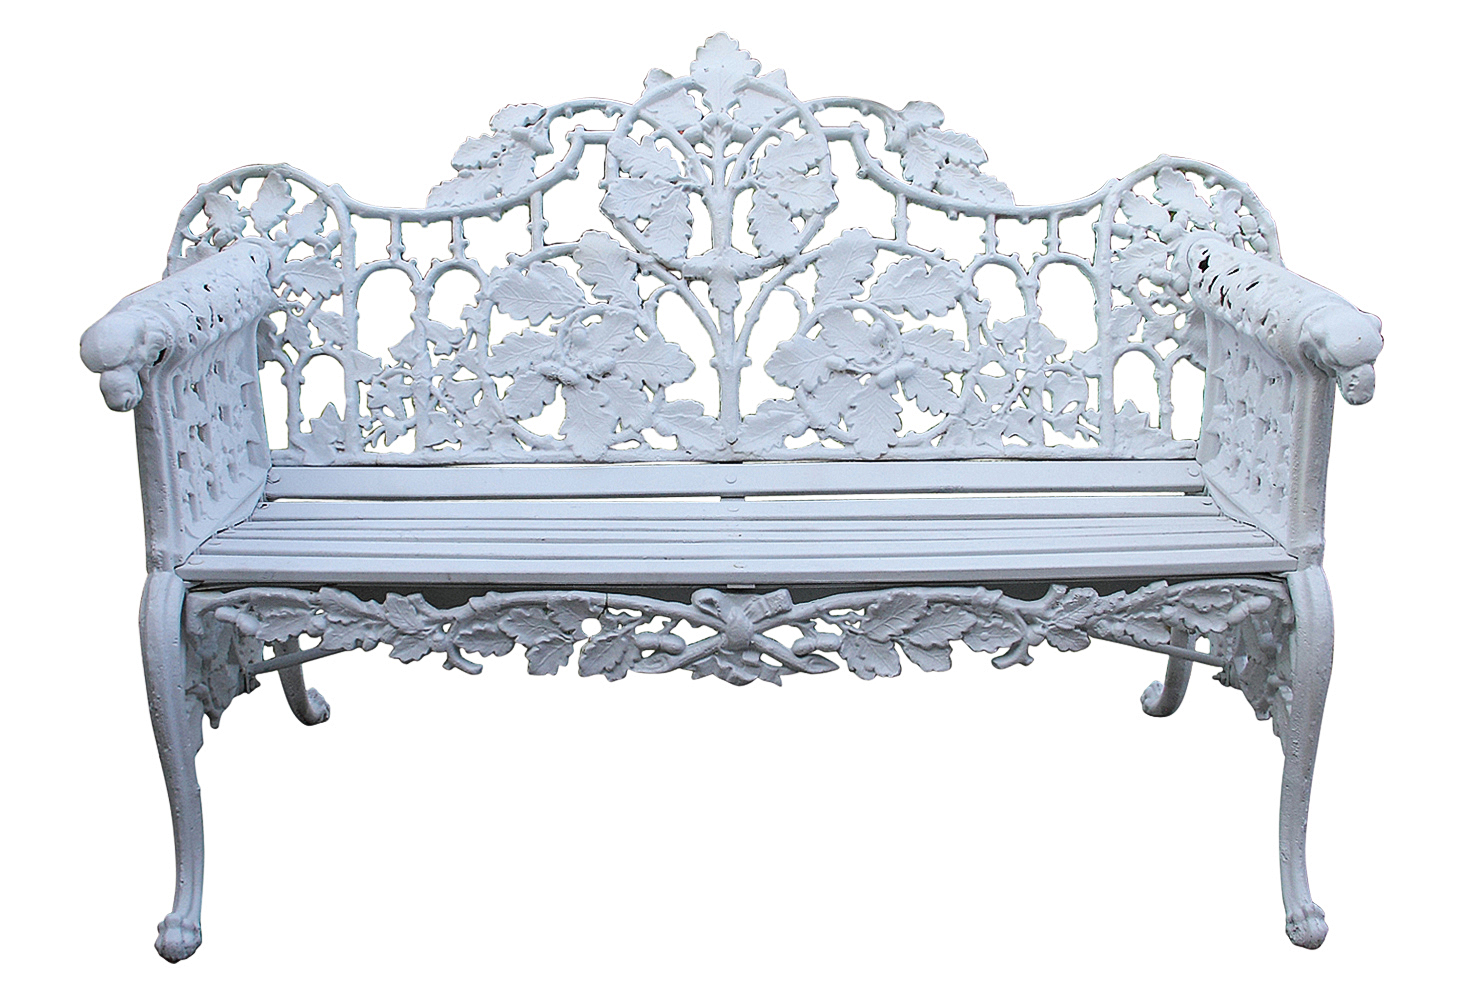 Antique cast iron garden bench omero home - Antique Solid Oak Dining Table Images Table French White